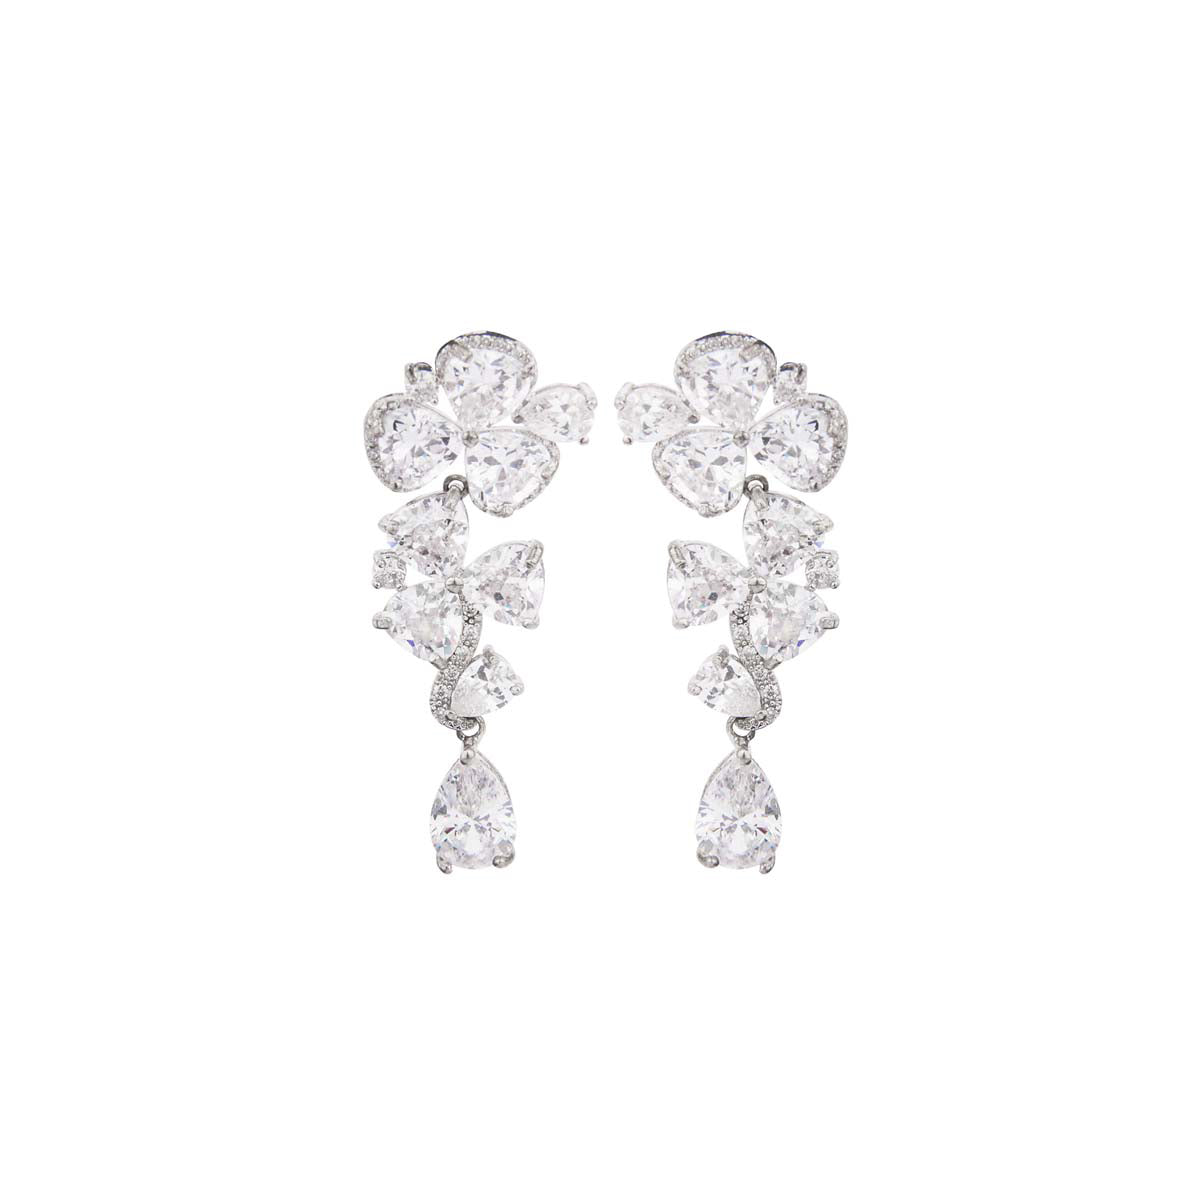 Wish upon the stars with this smashing pair studded with triangle & marquise crystals in a floral shape with a sheen silver finish.